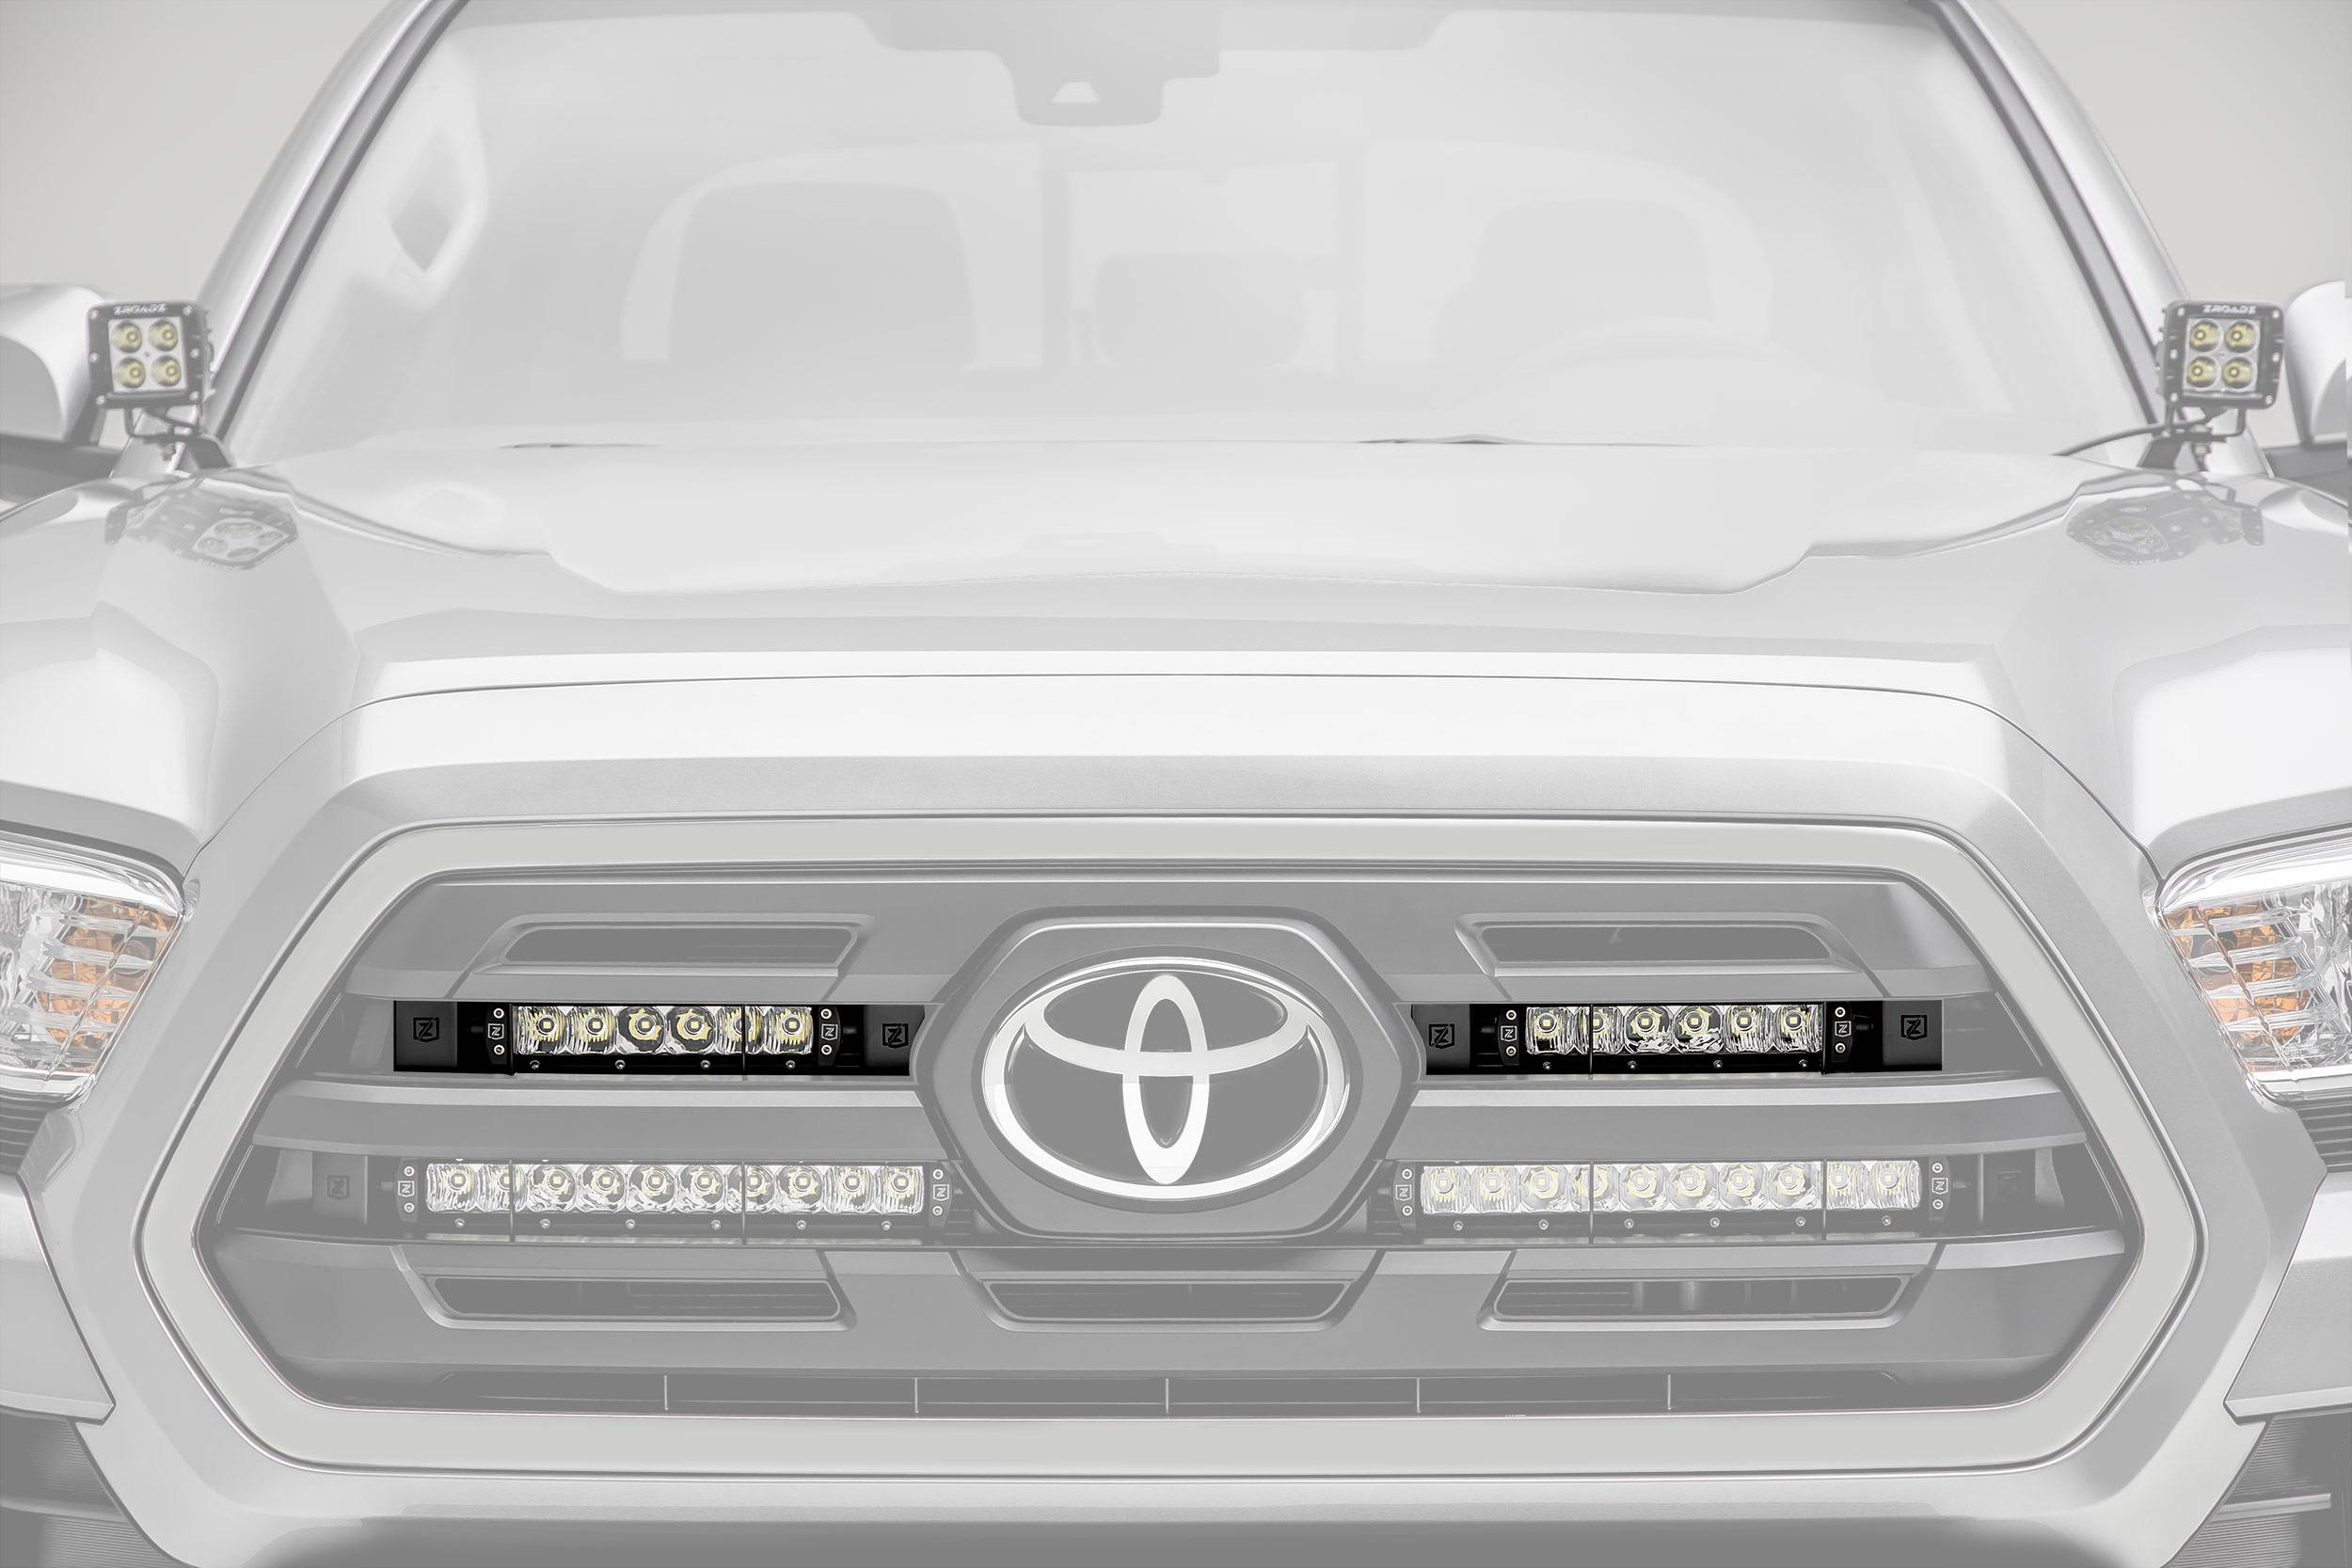 ZROADZ                                             - 2018-2019 Toyota Tacoma OEM Grille LED Kit, Incl. (2) 6 Inch LED Straight Single Row Slim Light Bars - PN #Z419511-KIT